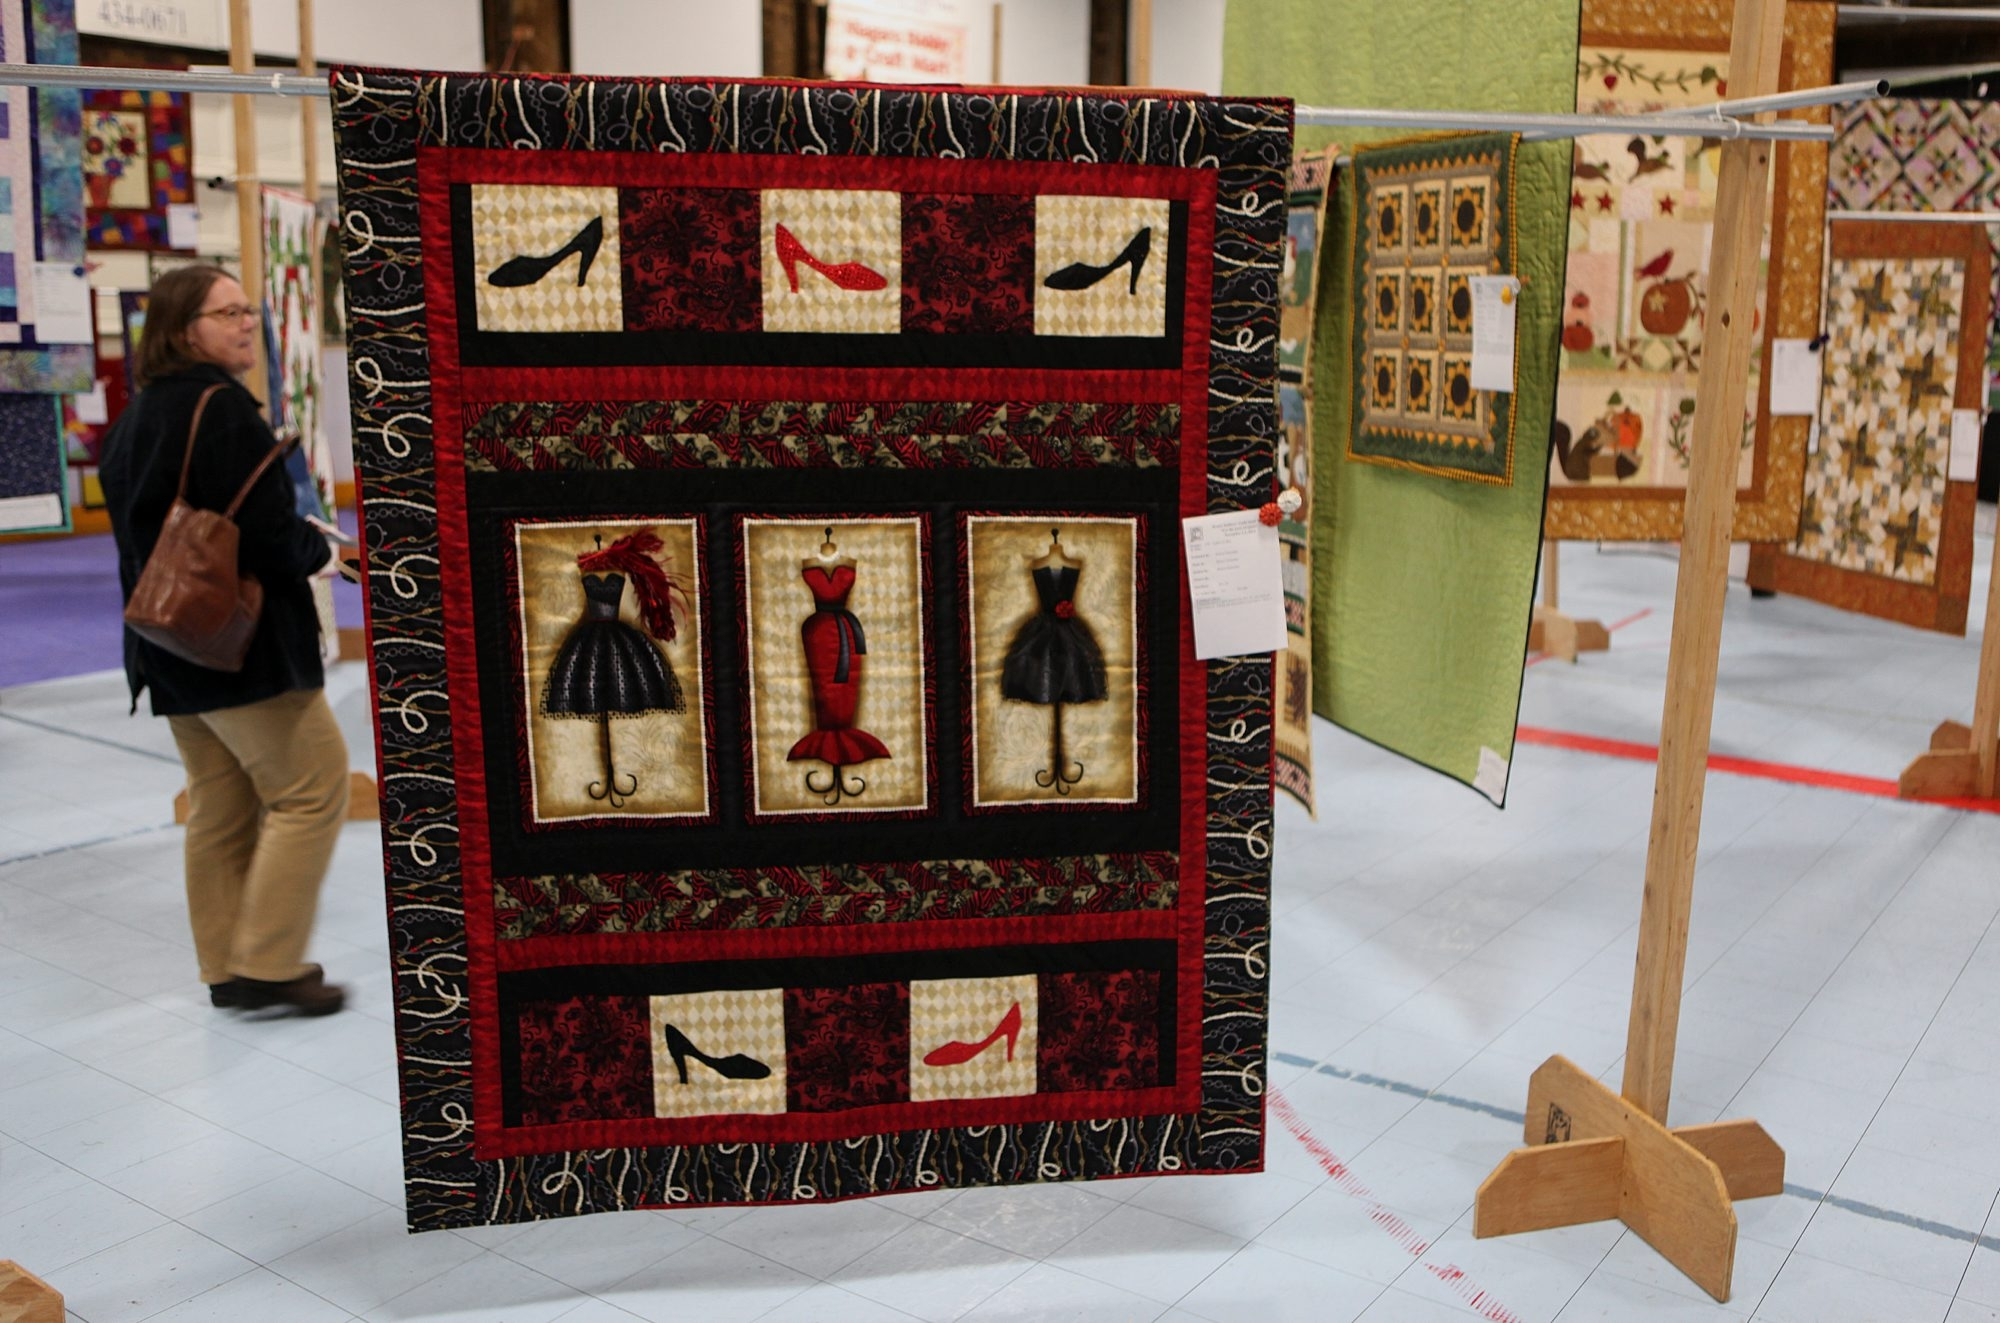 Attendees look at some large quilts on display Friday during the quilt show at the Kenan Center in Lockport.